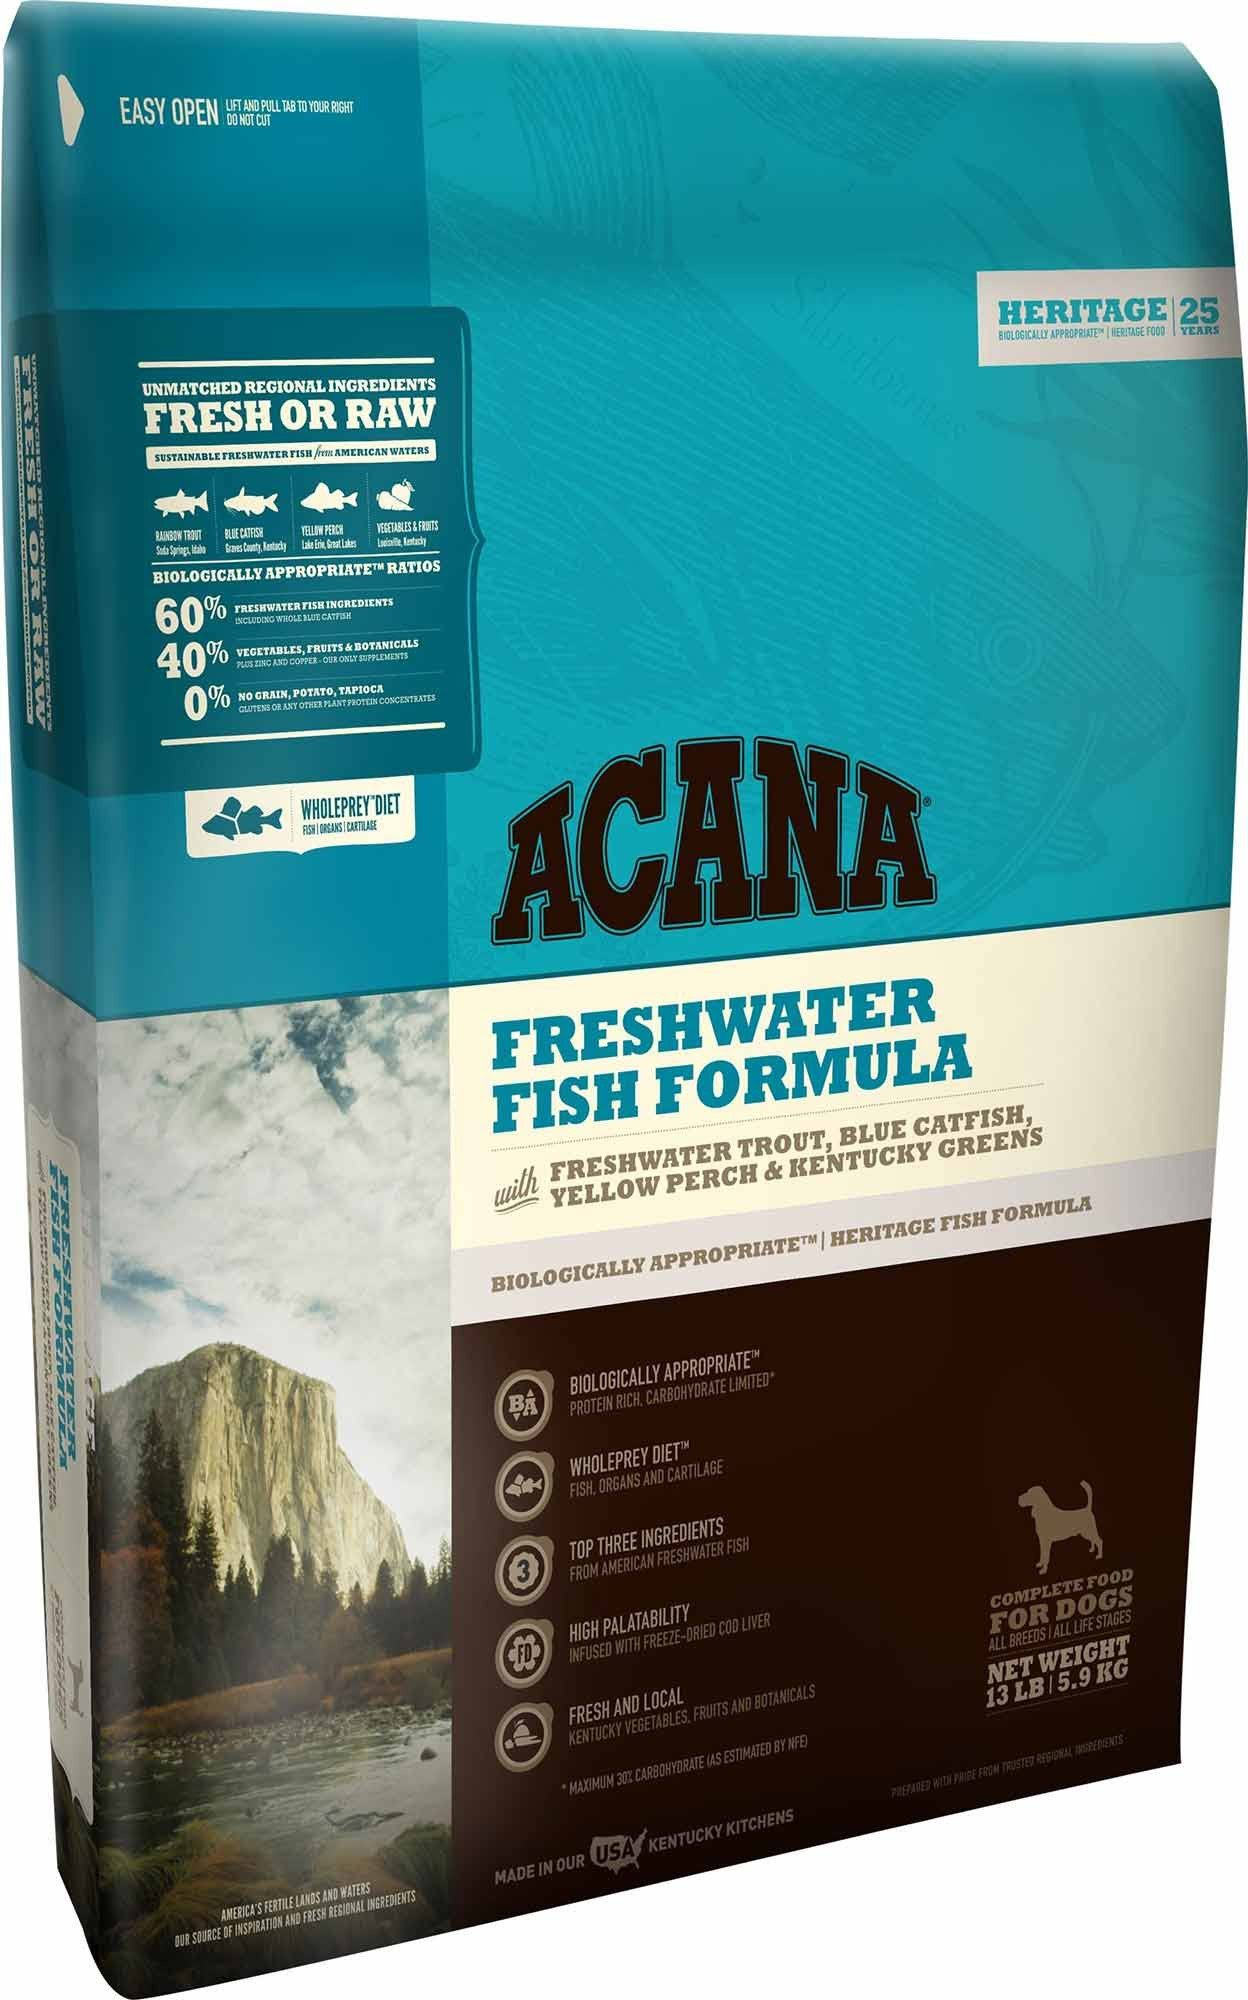 ACANA Freshwater Fish Heritage Dog Food 12 oz